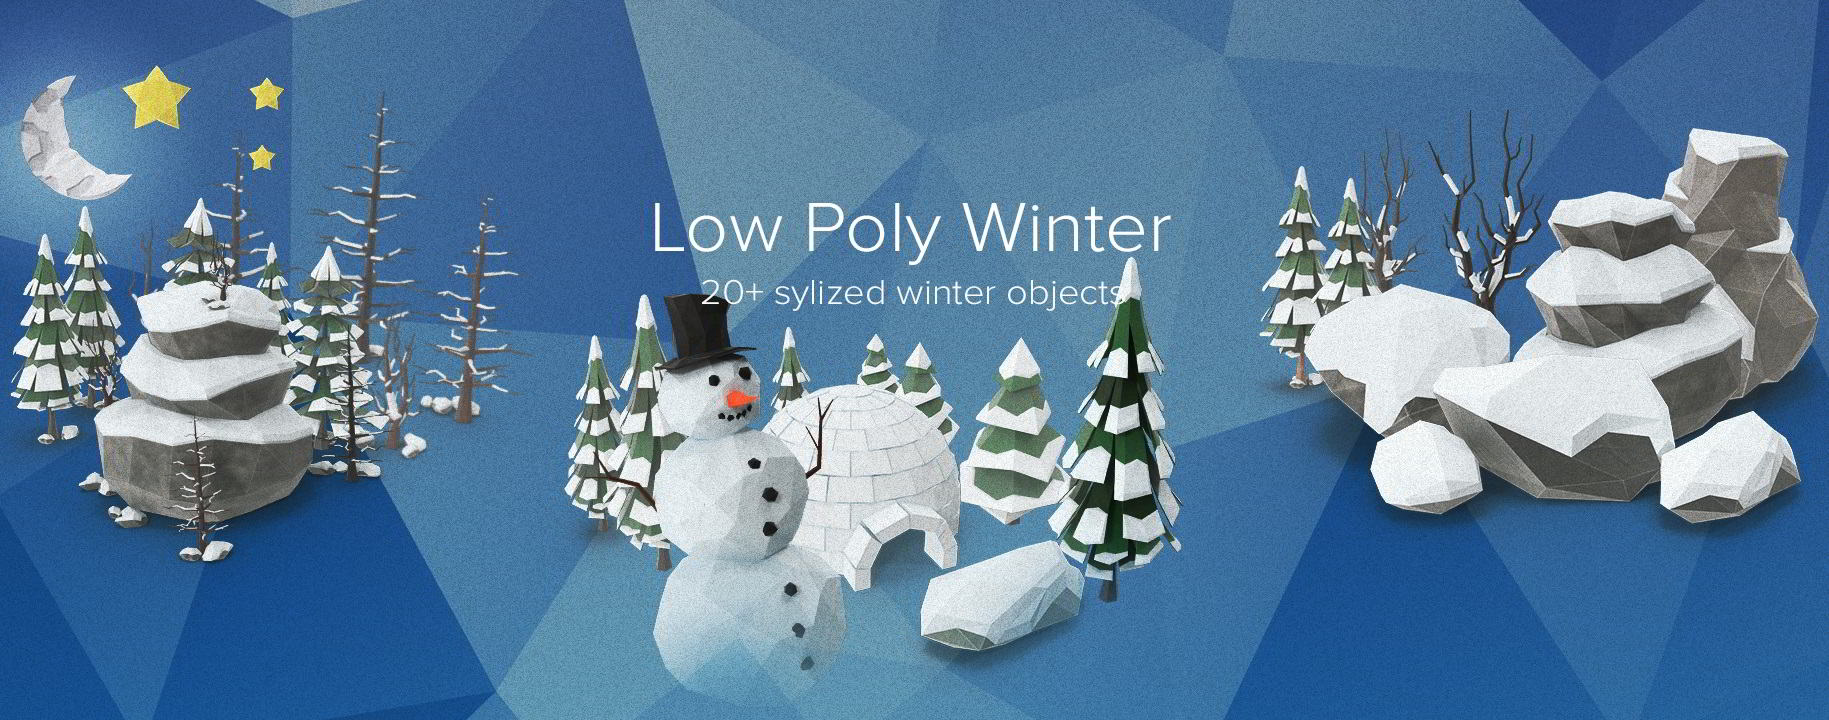 PixelSquid – Low Poly Winter Collection free download